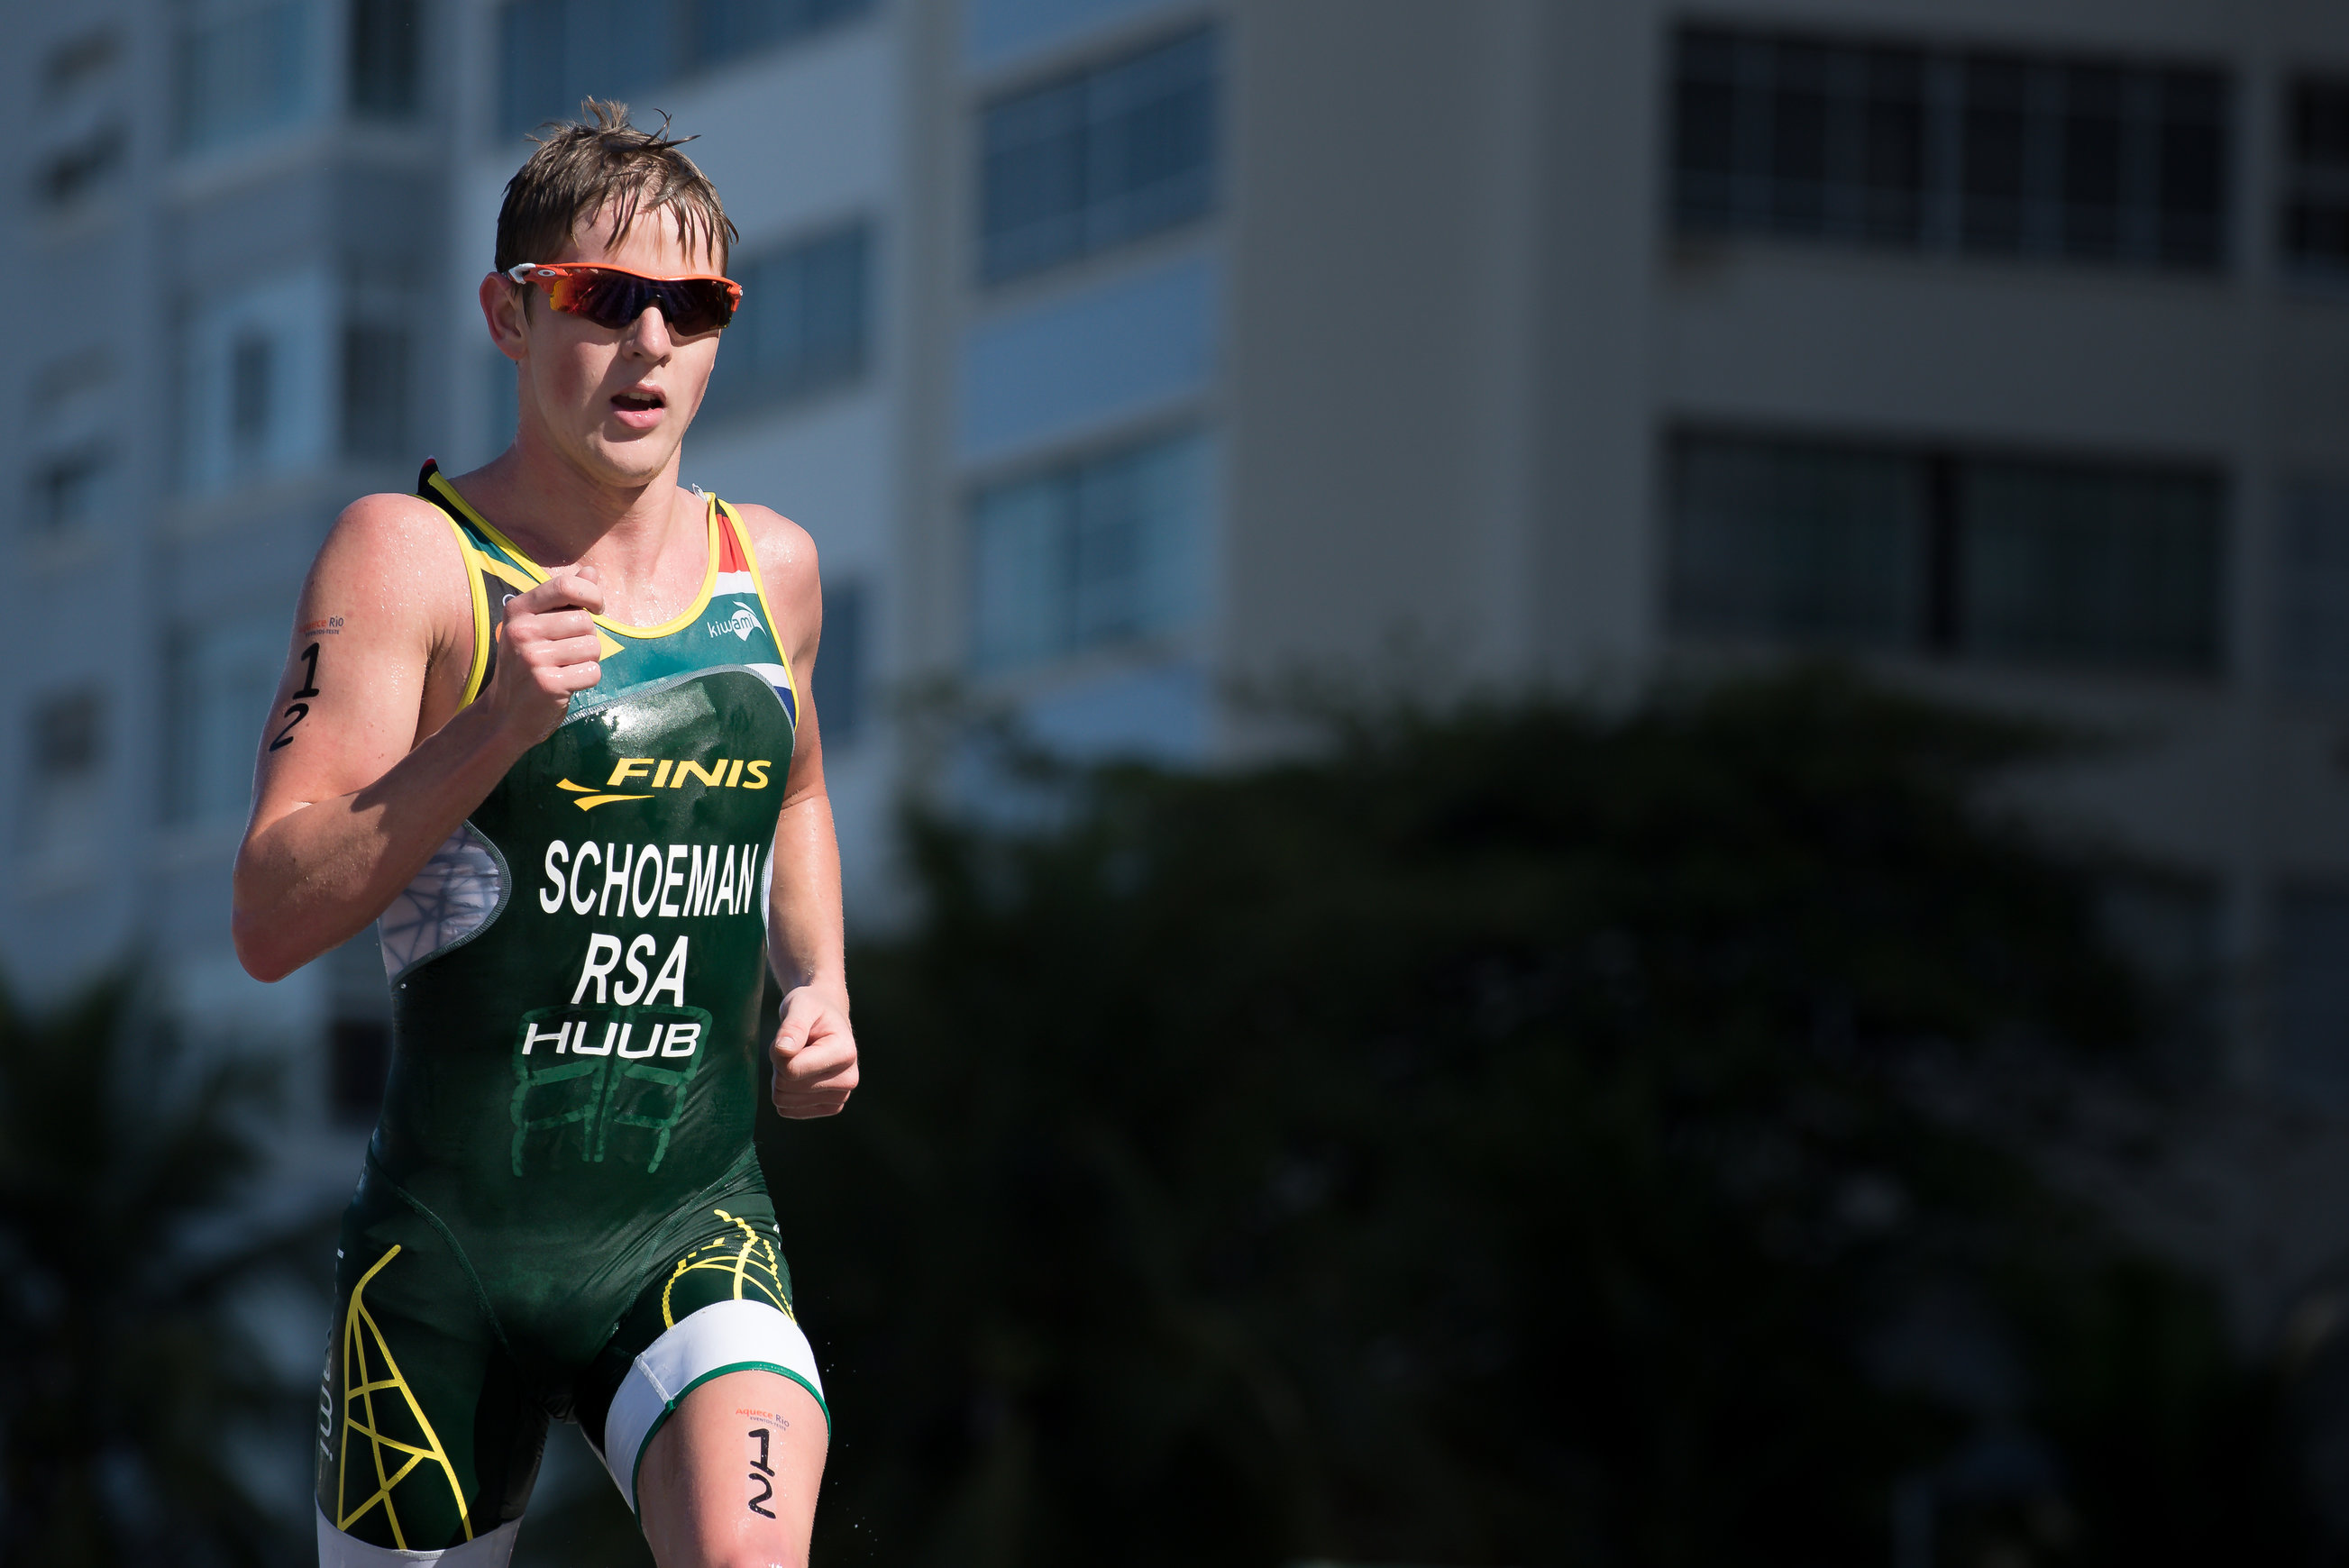 Schoeman all set for sprint event... and Sanders also jets in